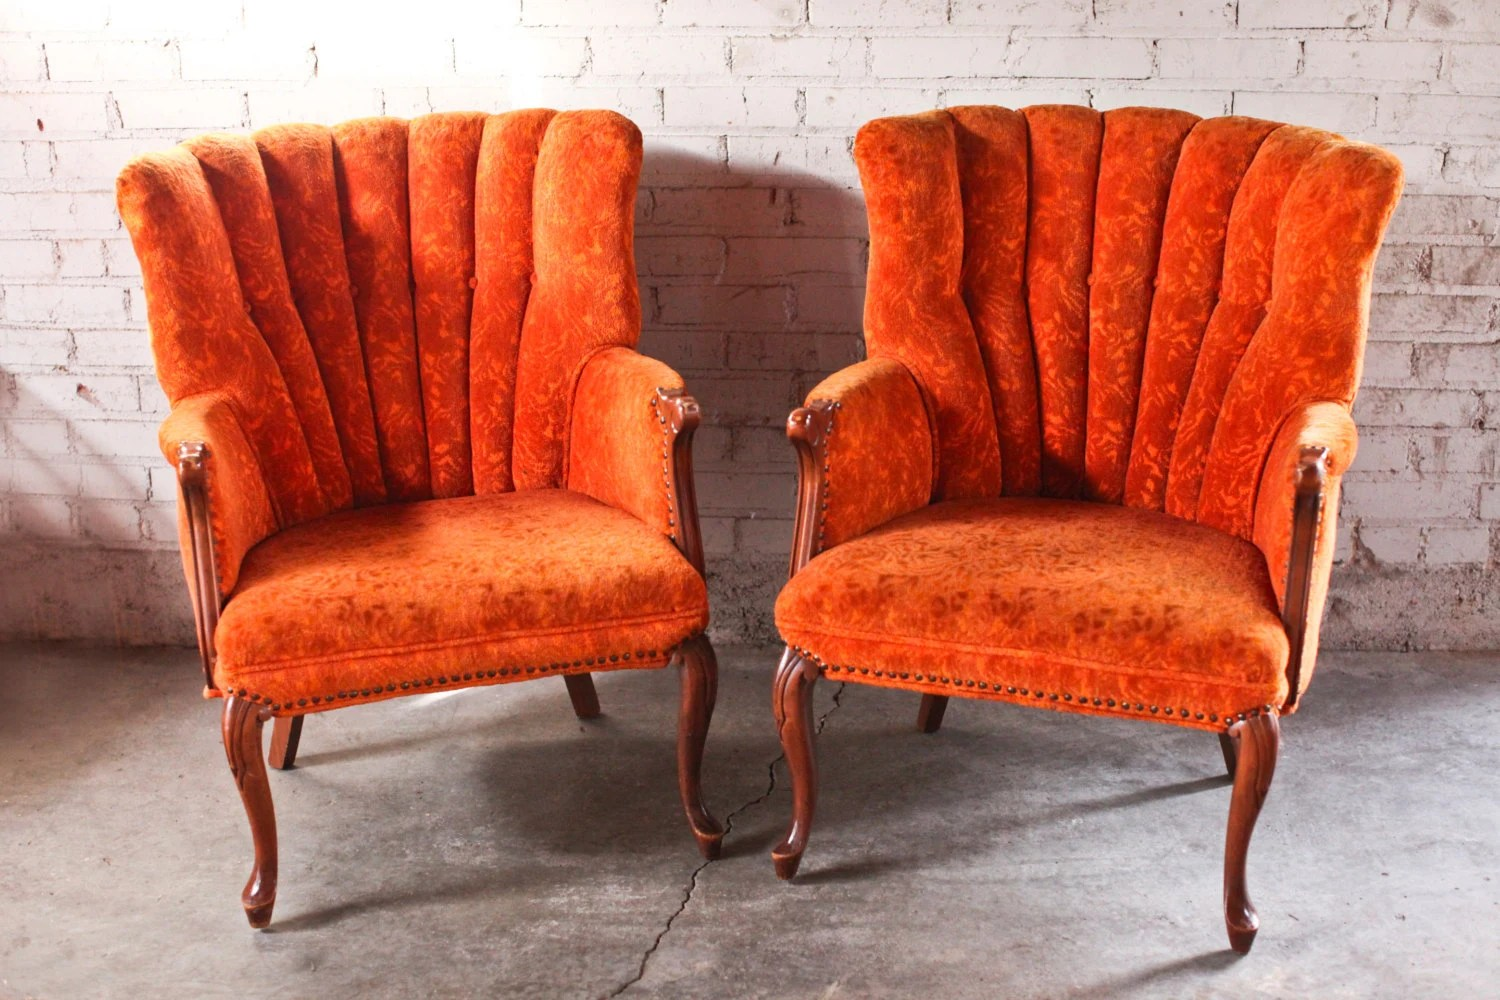 Floral Chairs Pair Vintage Antique Orange Floral Accent Chair